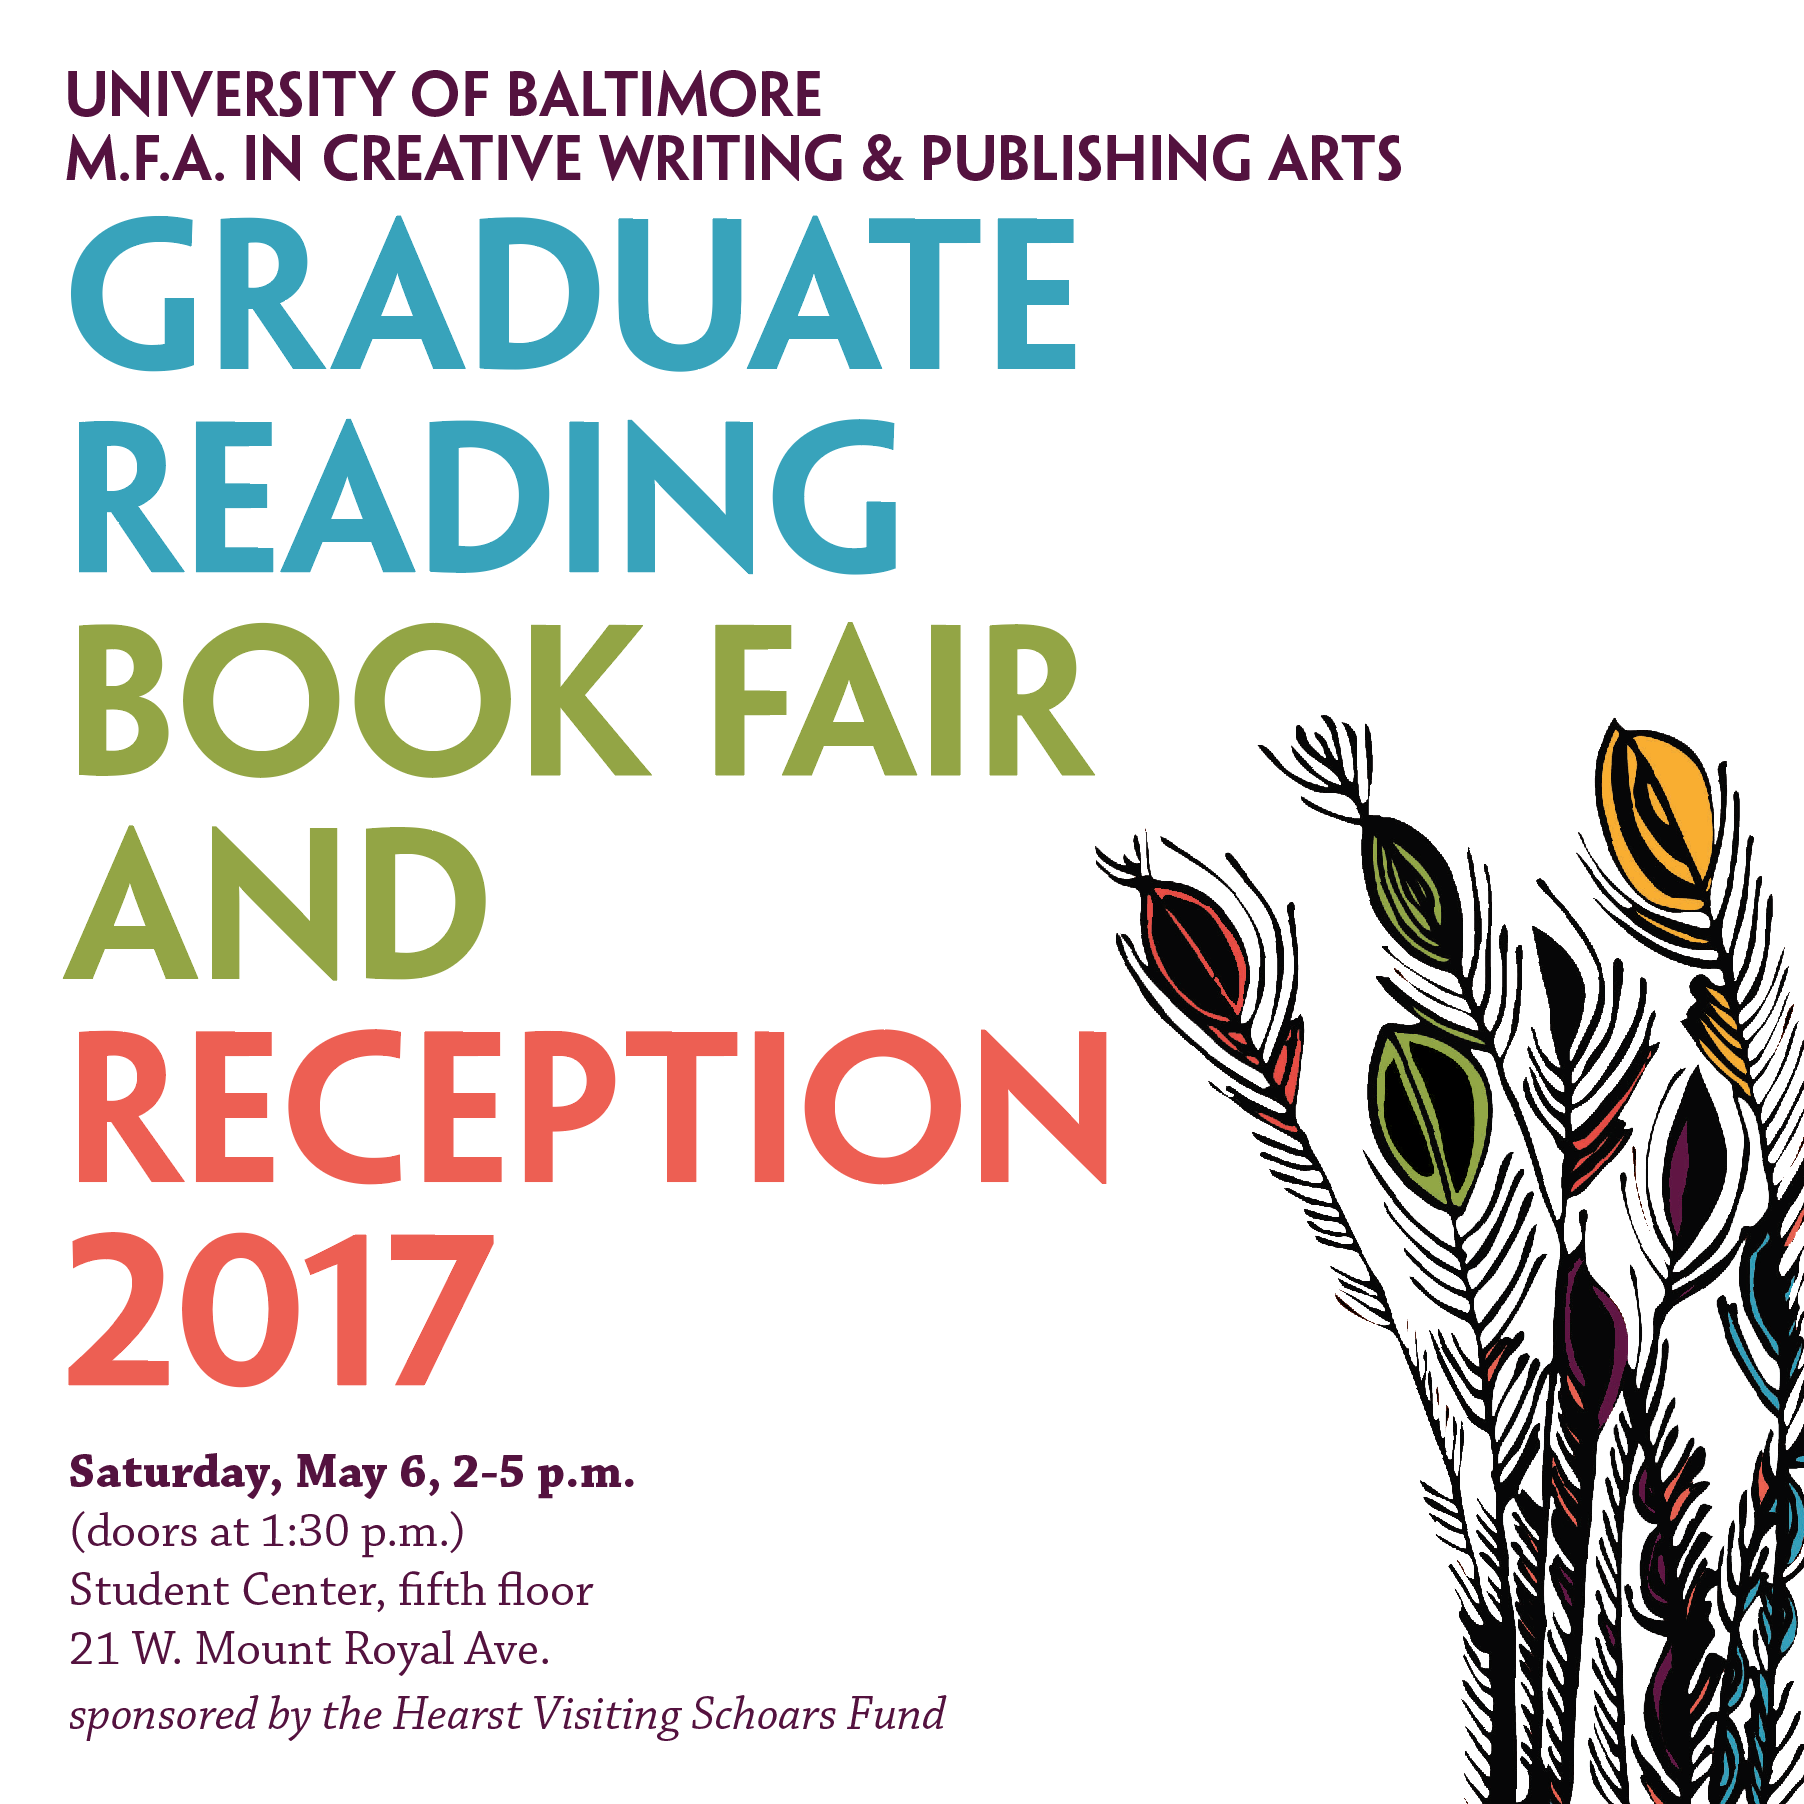 M.F.A. Graduate Reading, Book Fair and Reception 2017